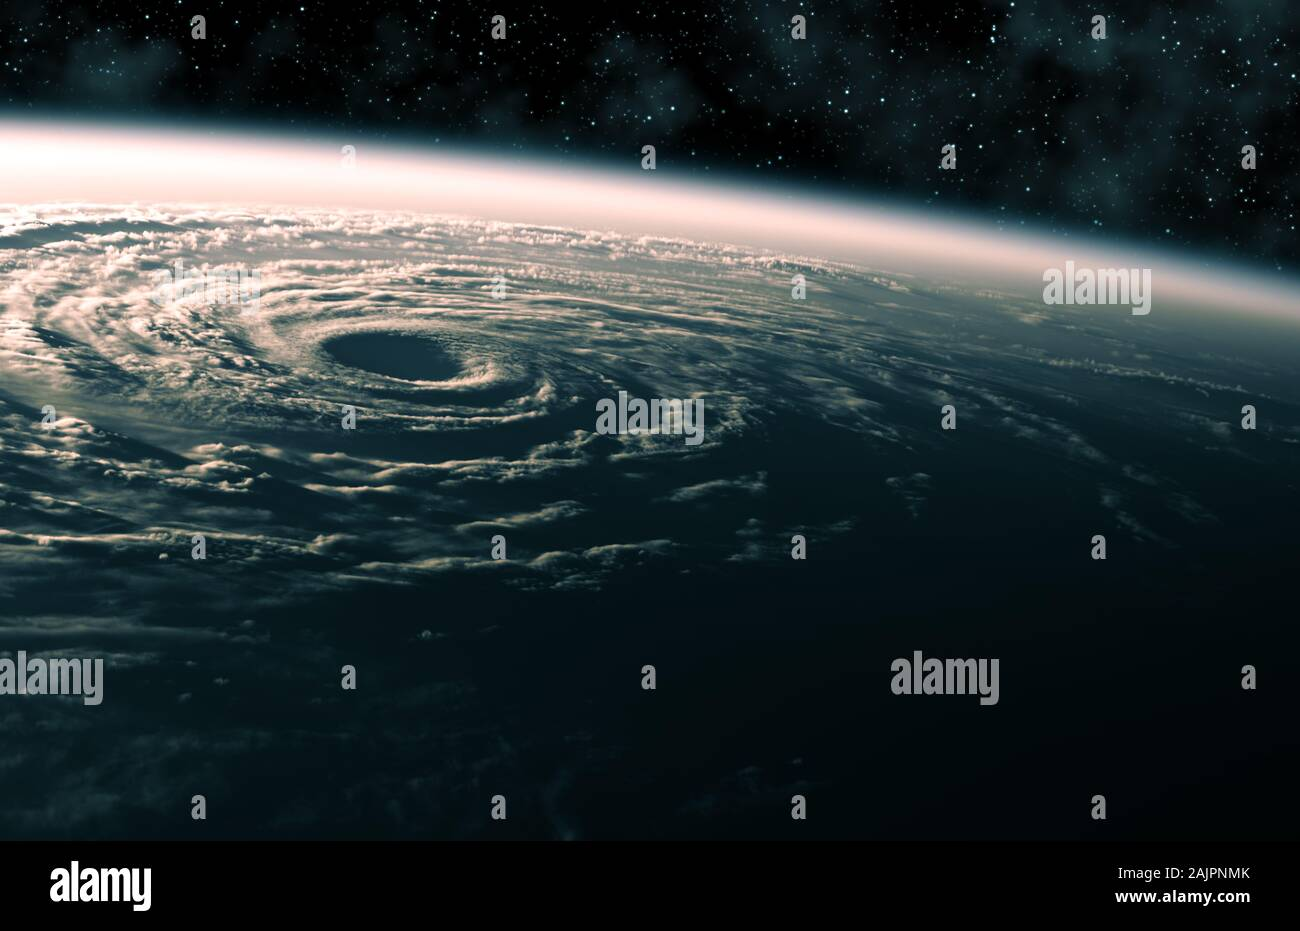 Large Hurricane Raging On Planet Earth. View From Space. Stock Photo